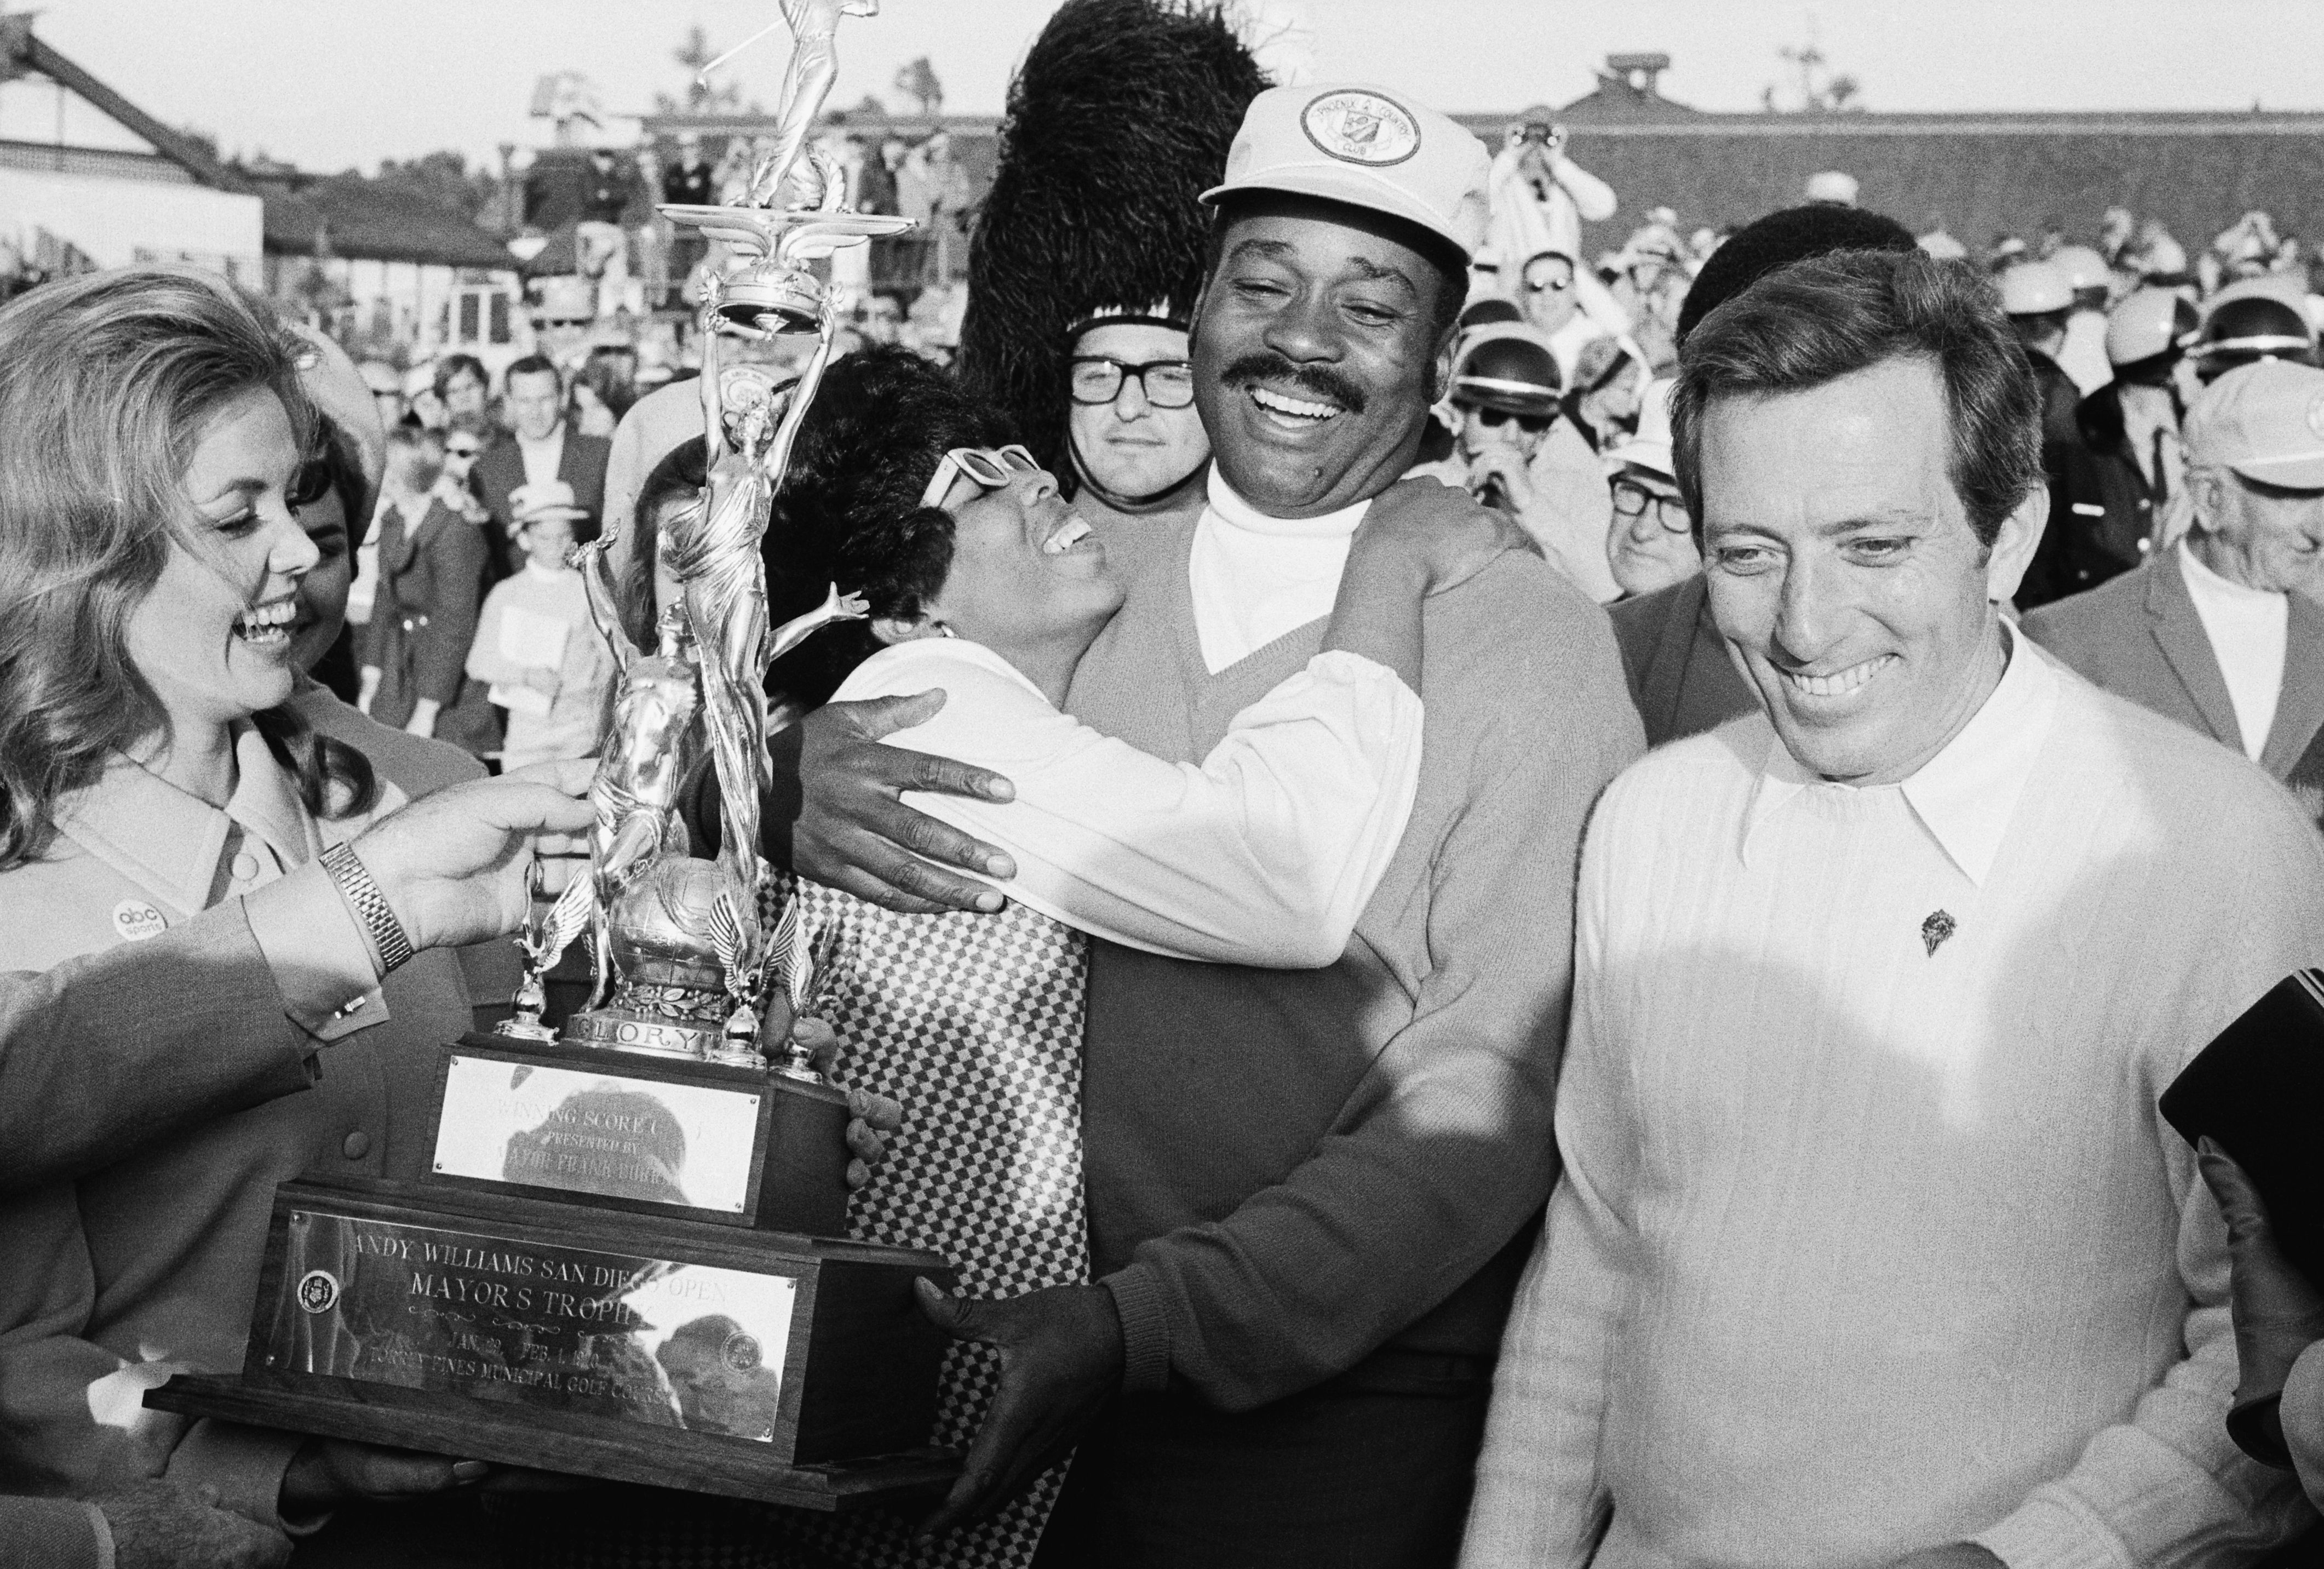 Pete Brown, first black golfer to win on the PGA Tour, adds another victory at the 1970 San Diego Open.